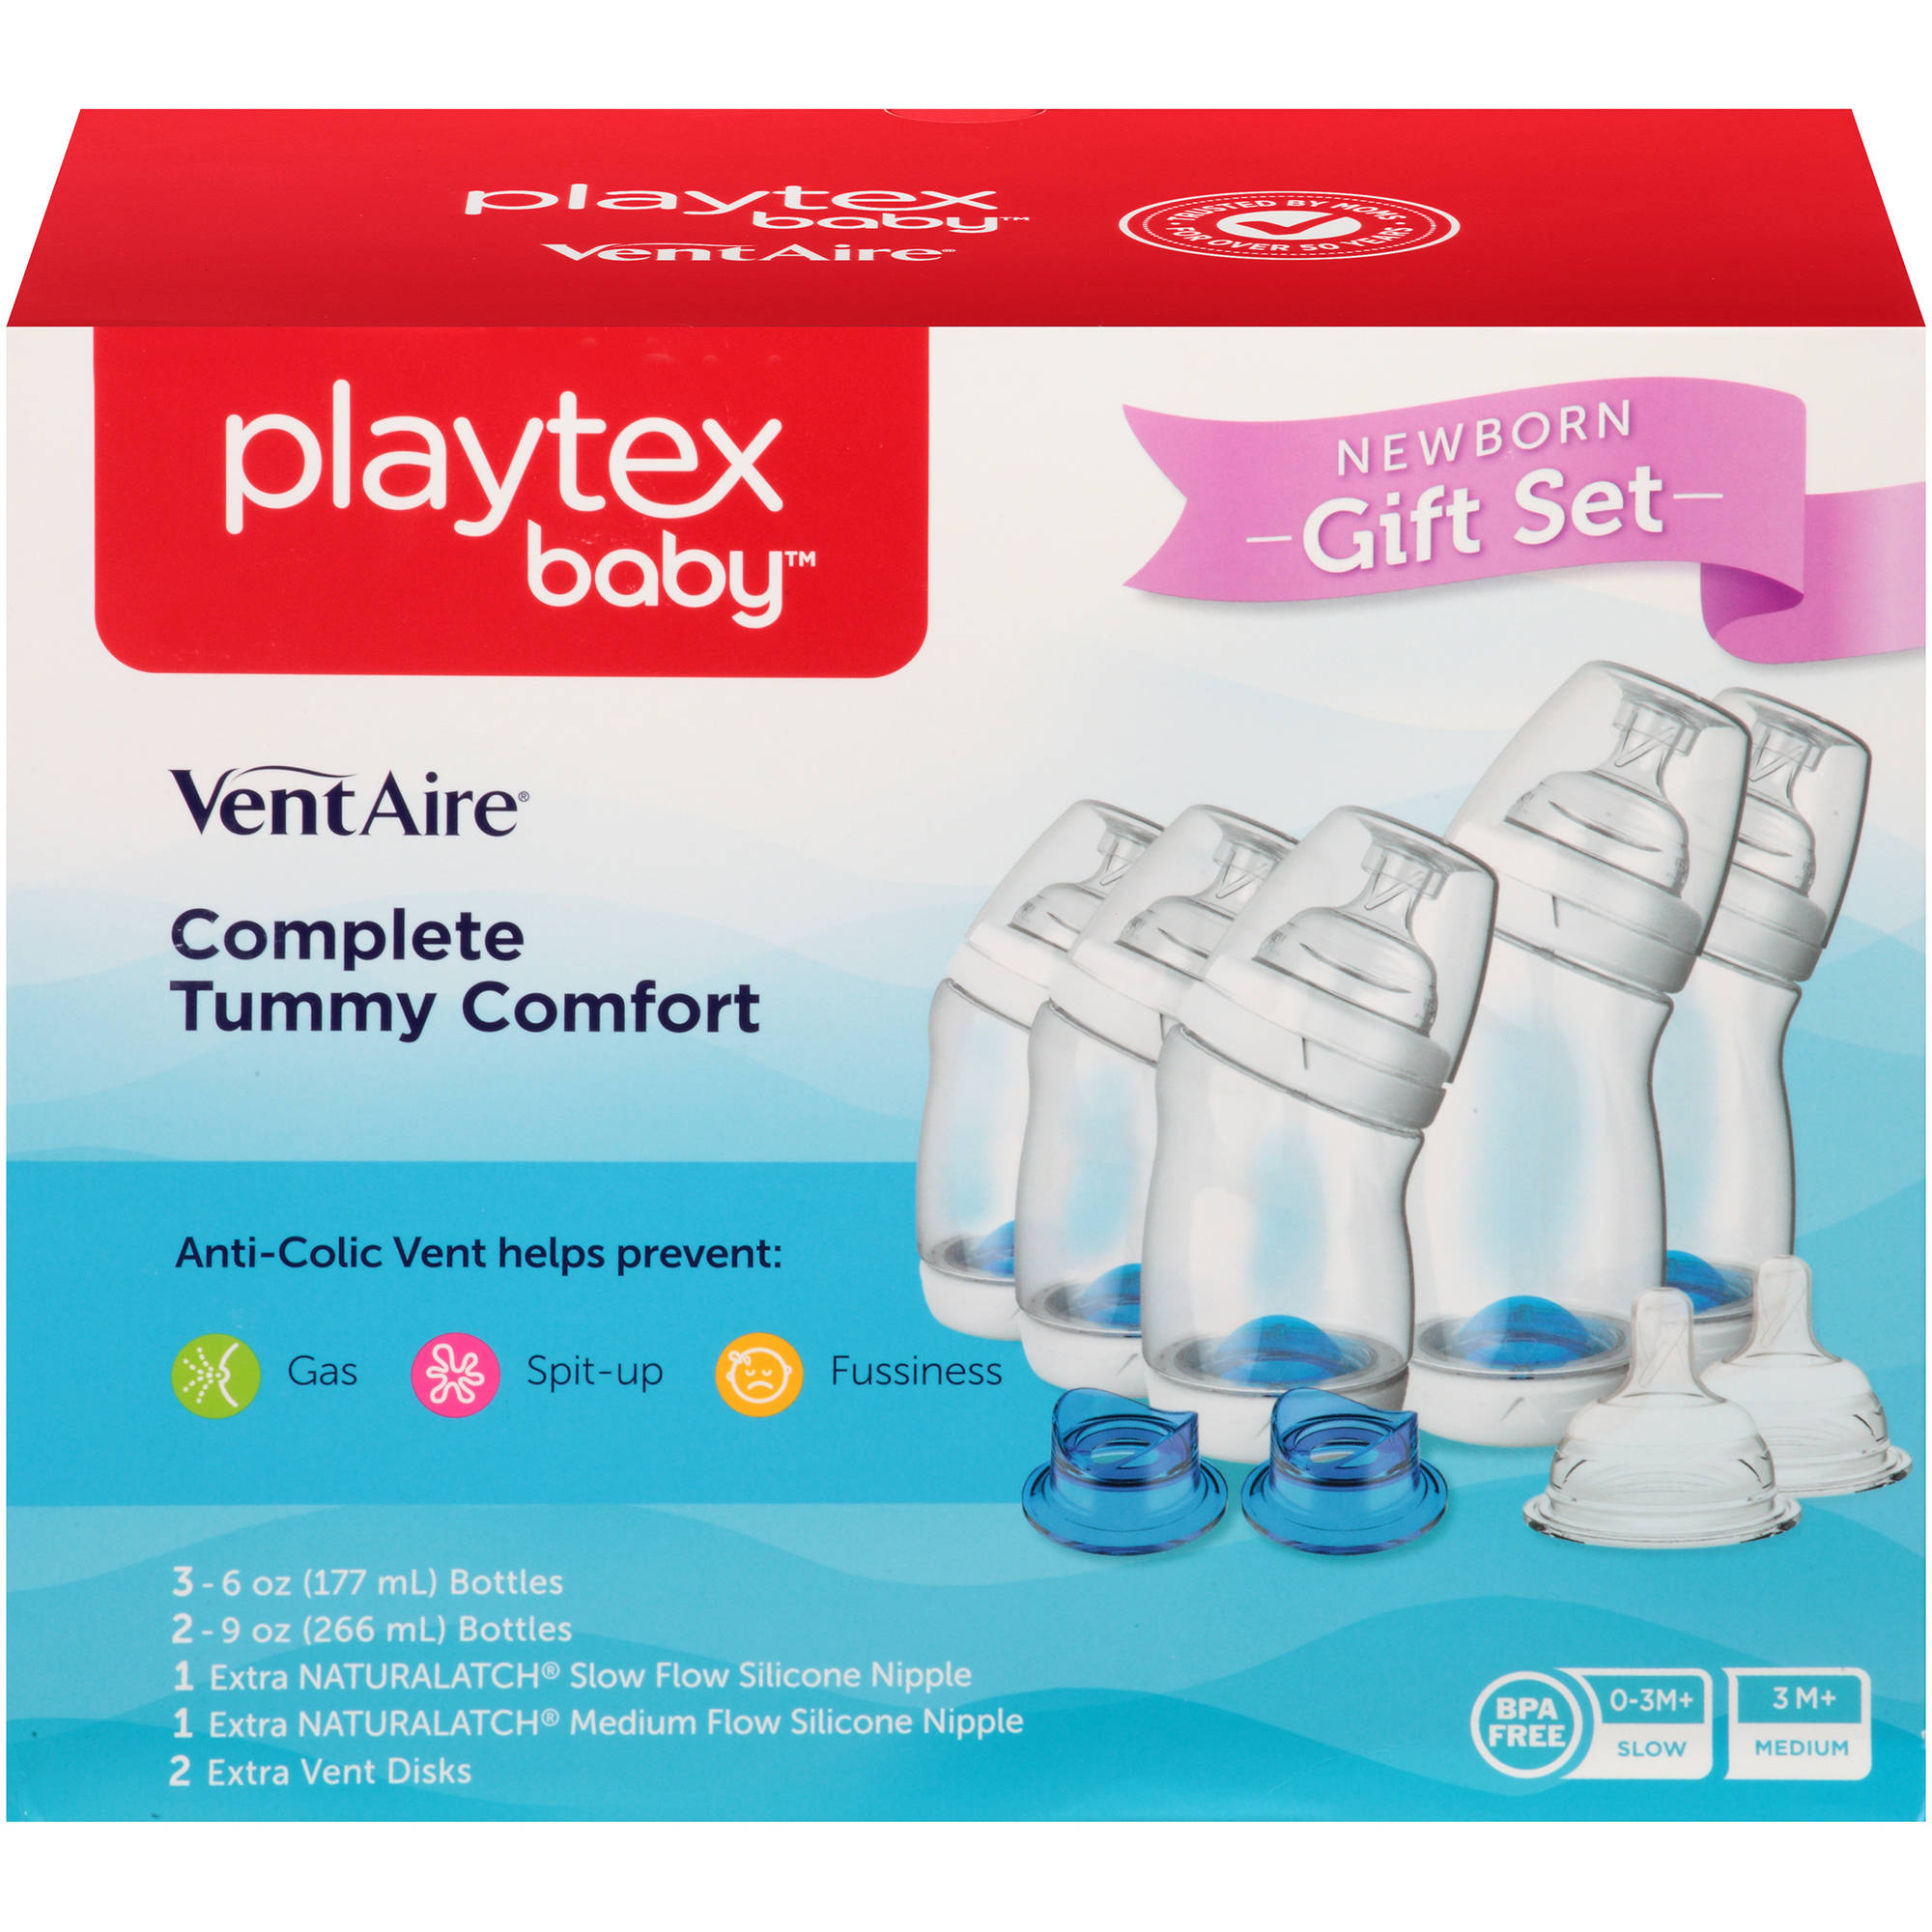 Playtex Baby VentAire Complete Tummy Comfort Baby Bottle Gift Set